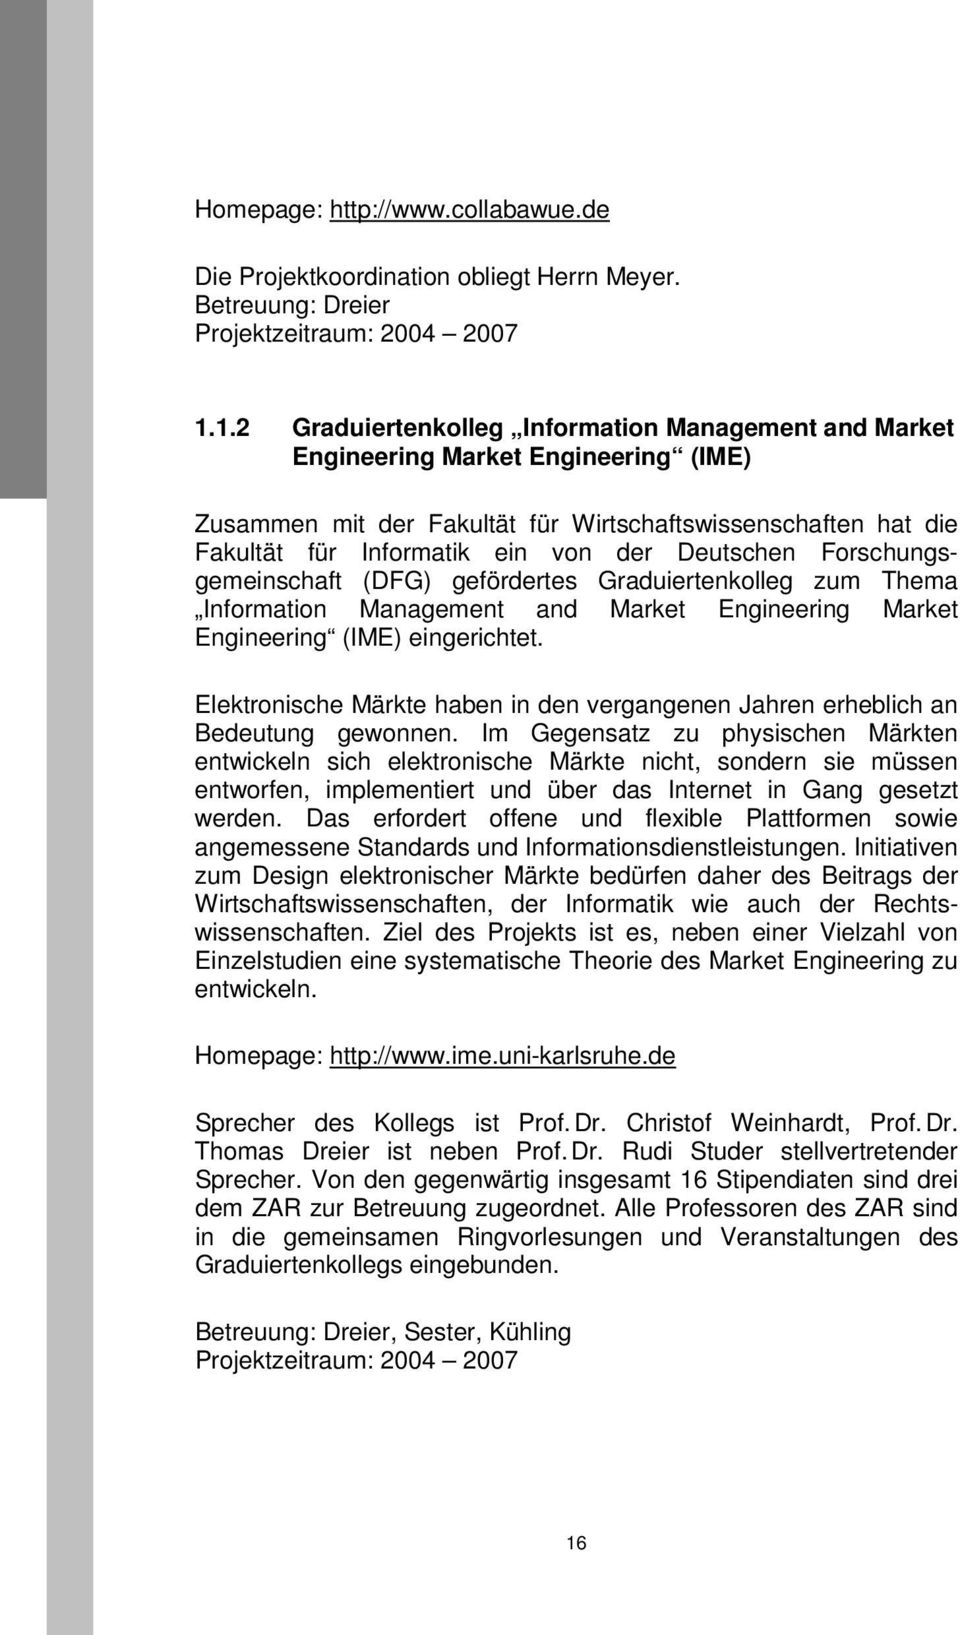 Deutschen Forschungsgemeinschaft (DFG) gefördertes Graduiertenkolleg zum Thema Information Management and Market Engineering Market Engineering (IME) eingerichtet.